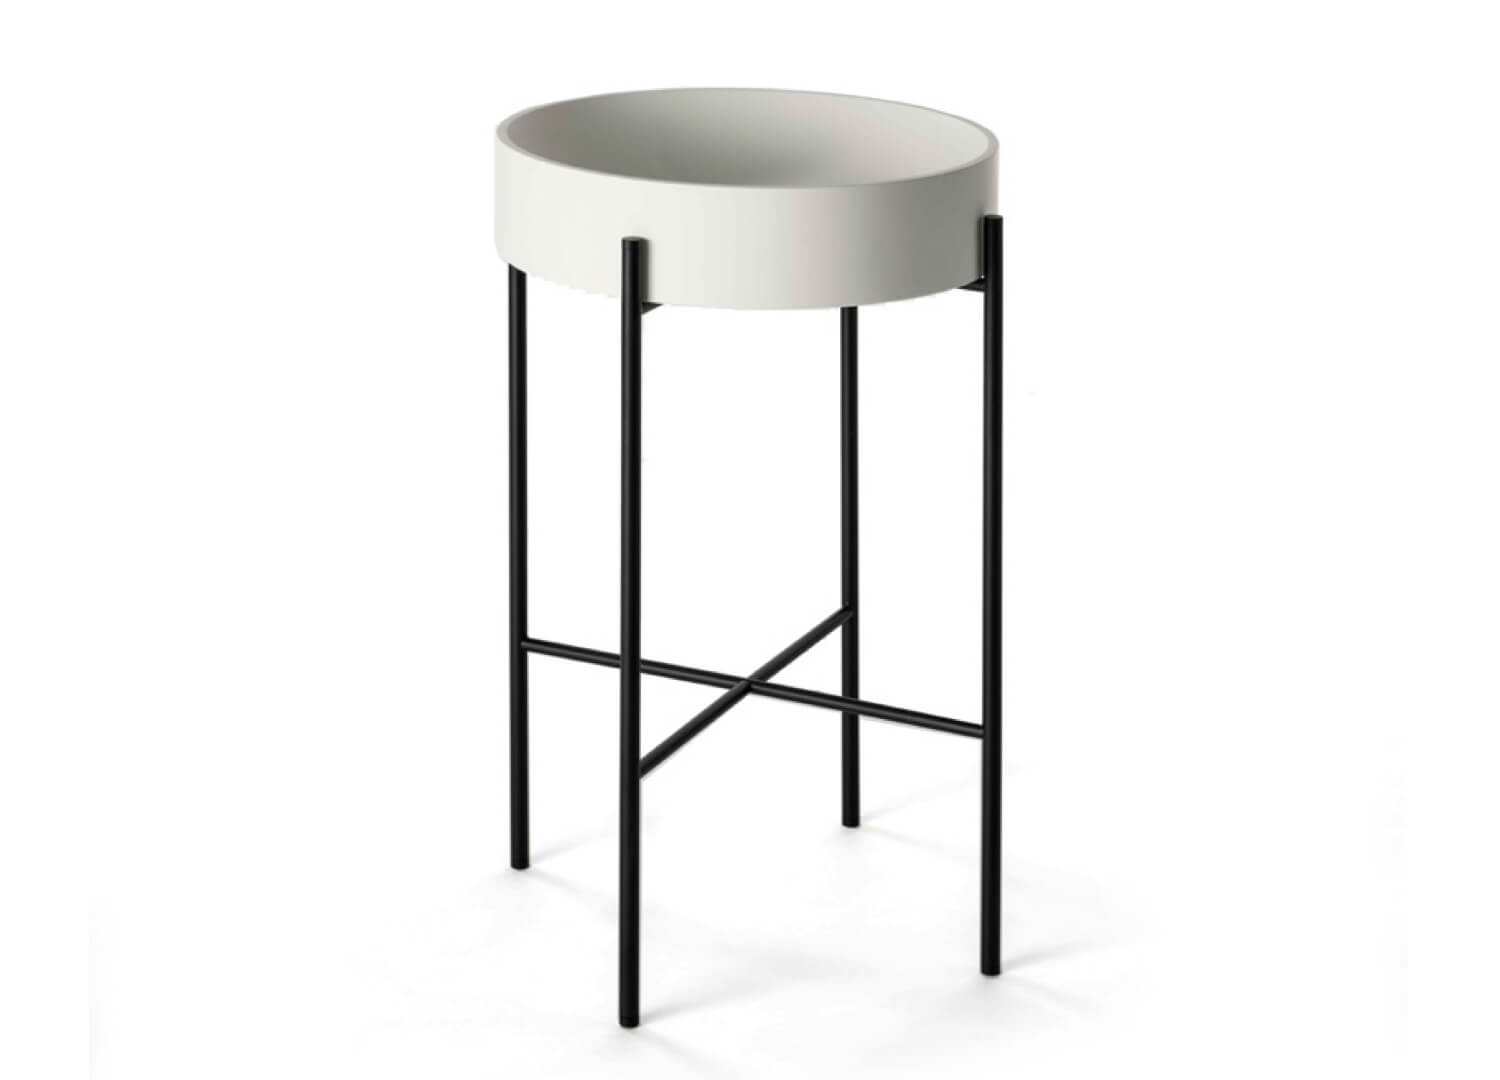 est living design directoy stand washbasin meizai1